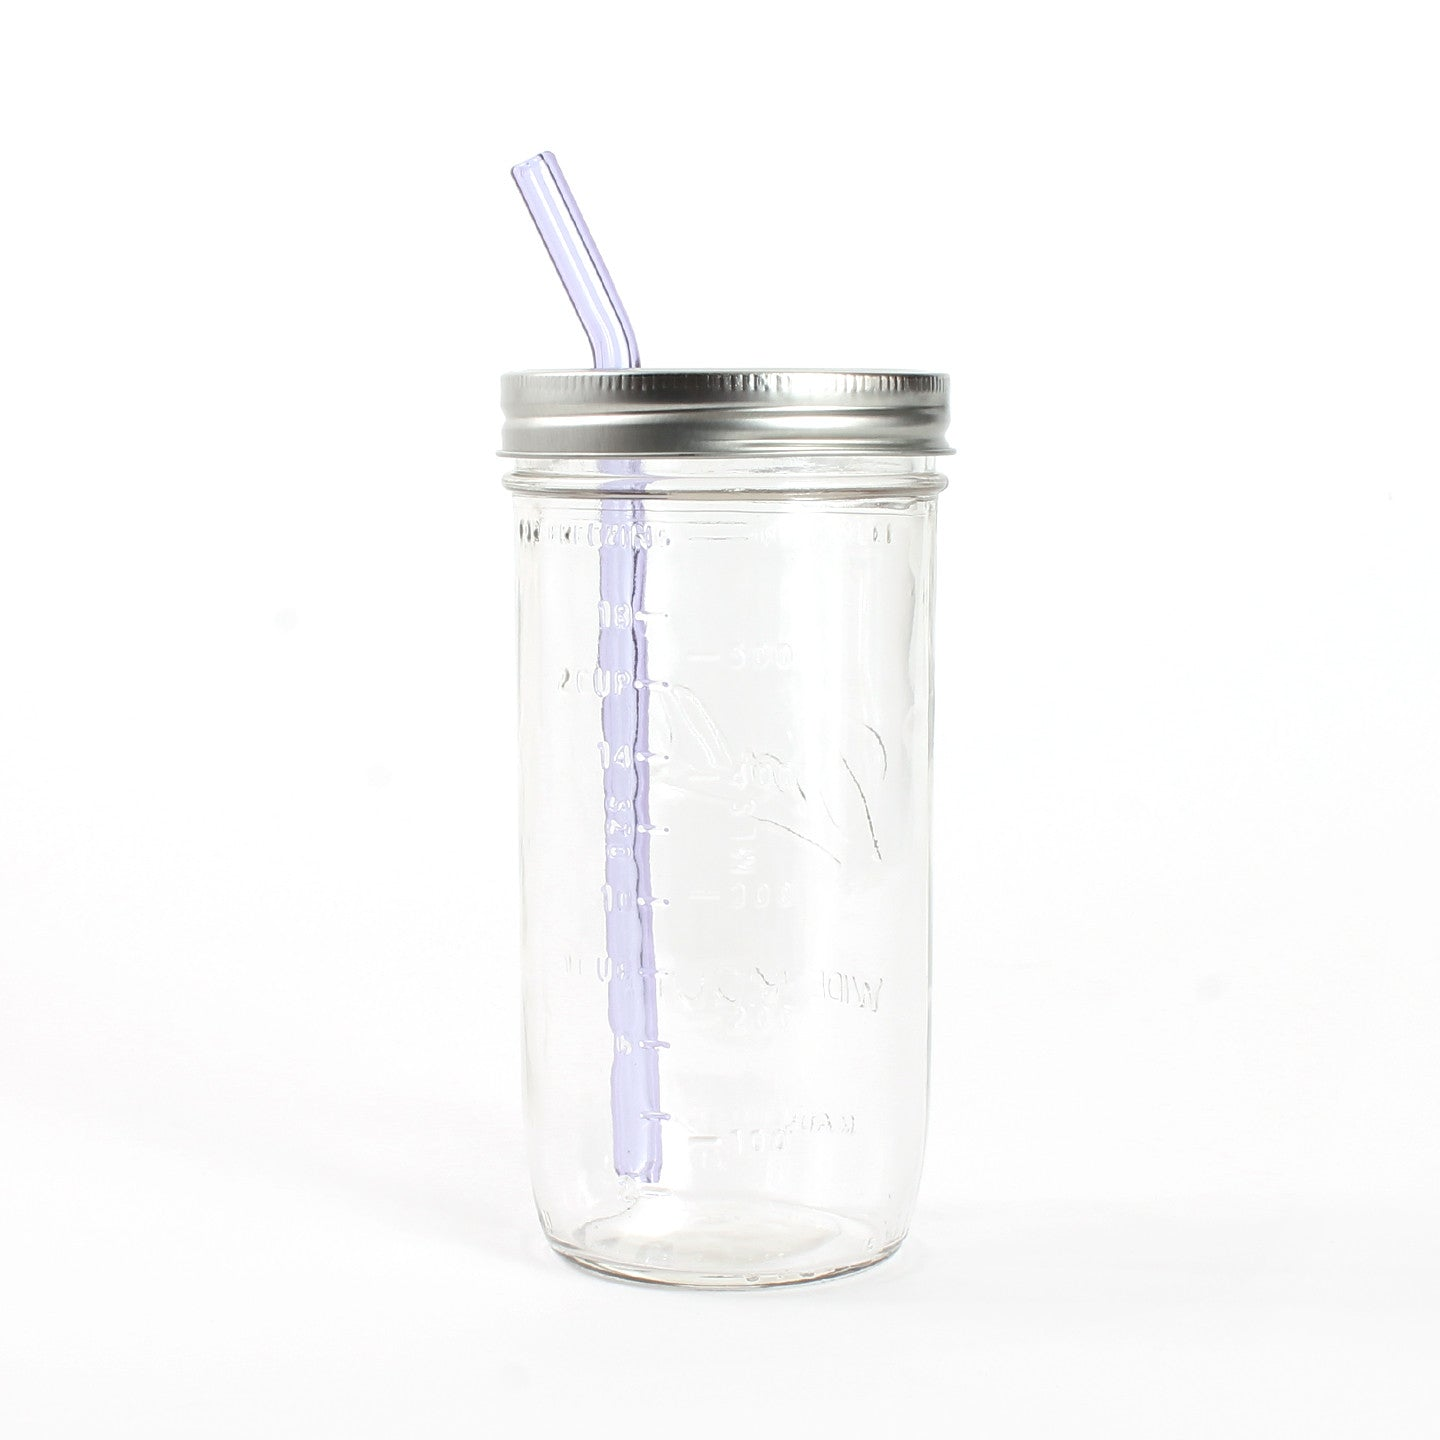 Glass Straw Mason Jar Sipper Clear 24oz Jar One Mercantile